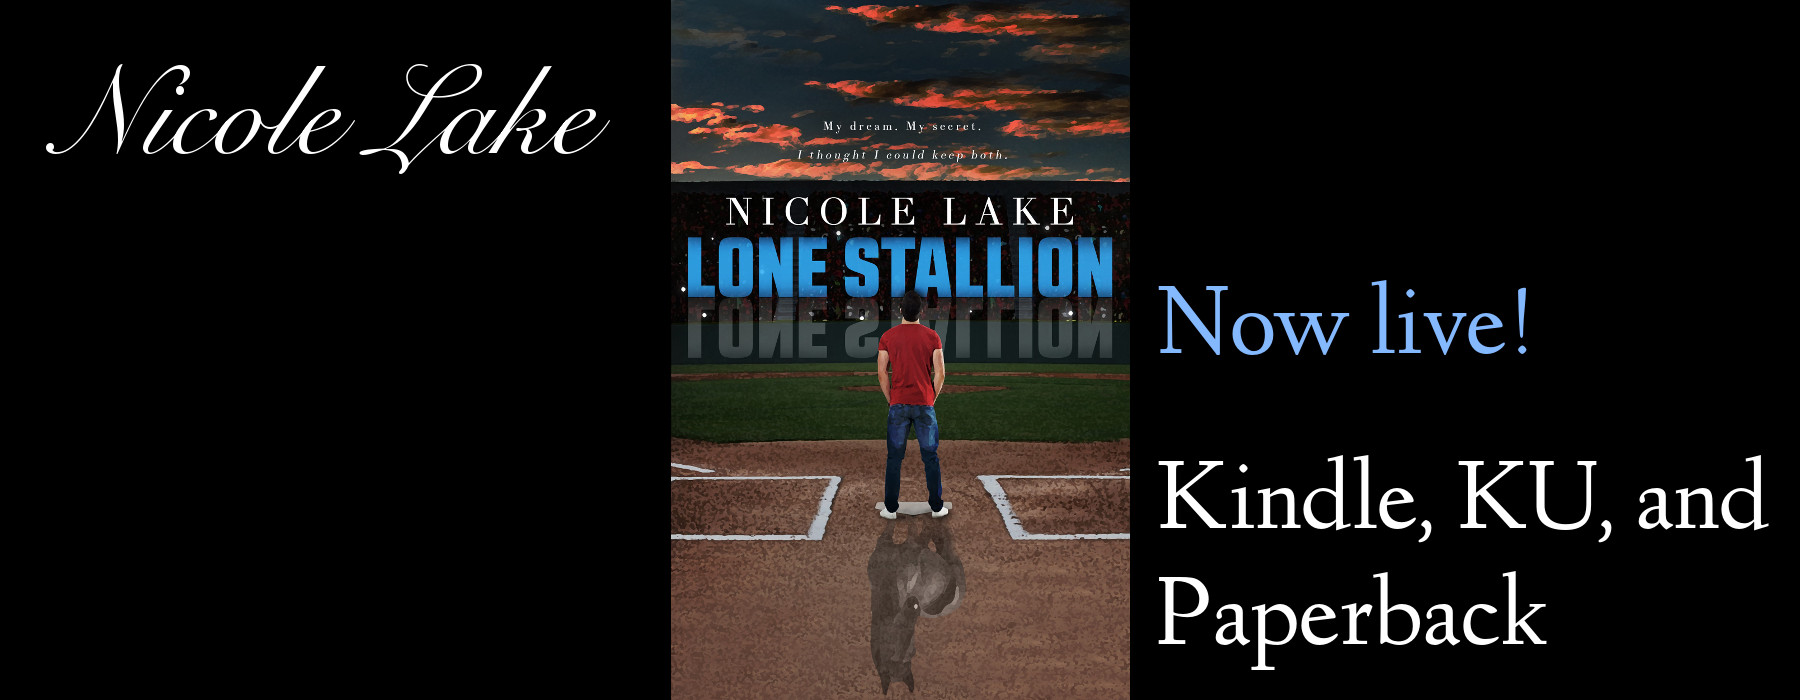 Lone Stallion is now live on Kindle, KU, and paperback!